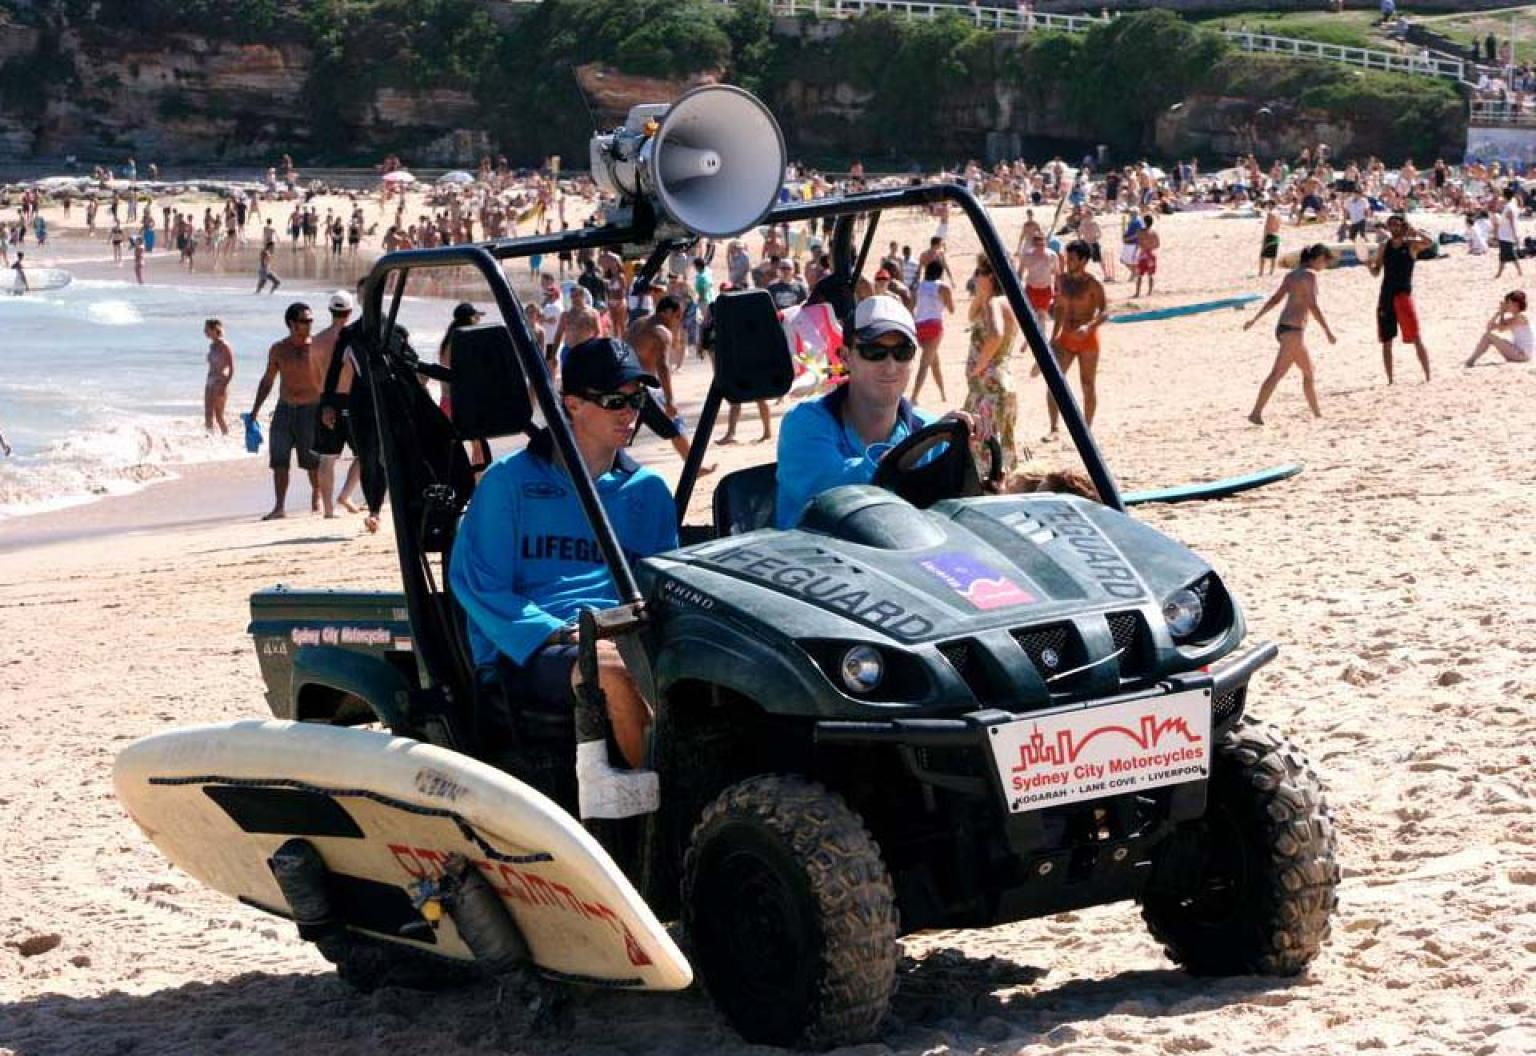 Two lifesavers driving a buggy on a crowded Bondi Beach in a scene from Bondi Rescue